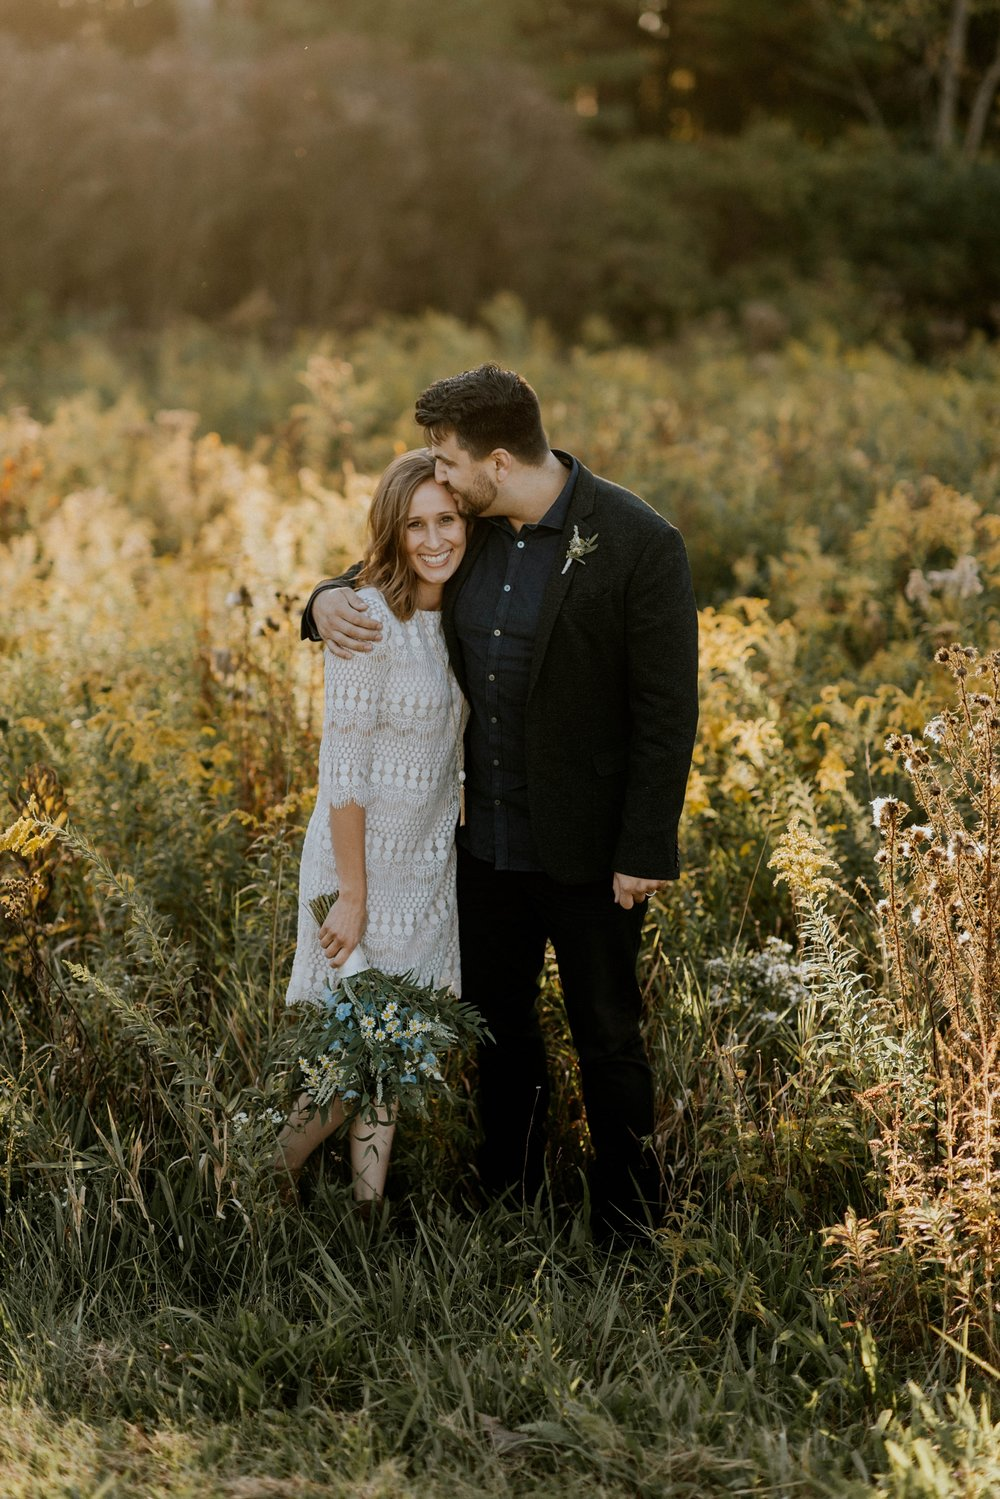 Wildflower-Field-Elopement-Vow-Renewal_Lisa+Chad_MJPHOTO-51.JPG